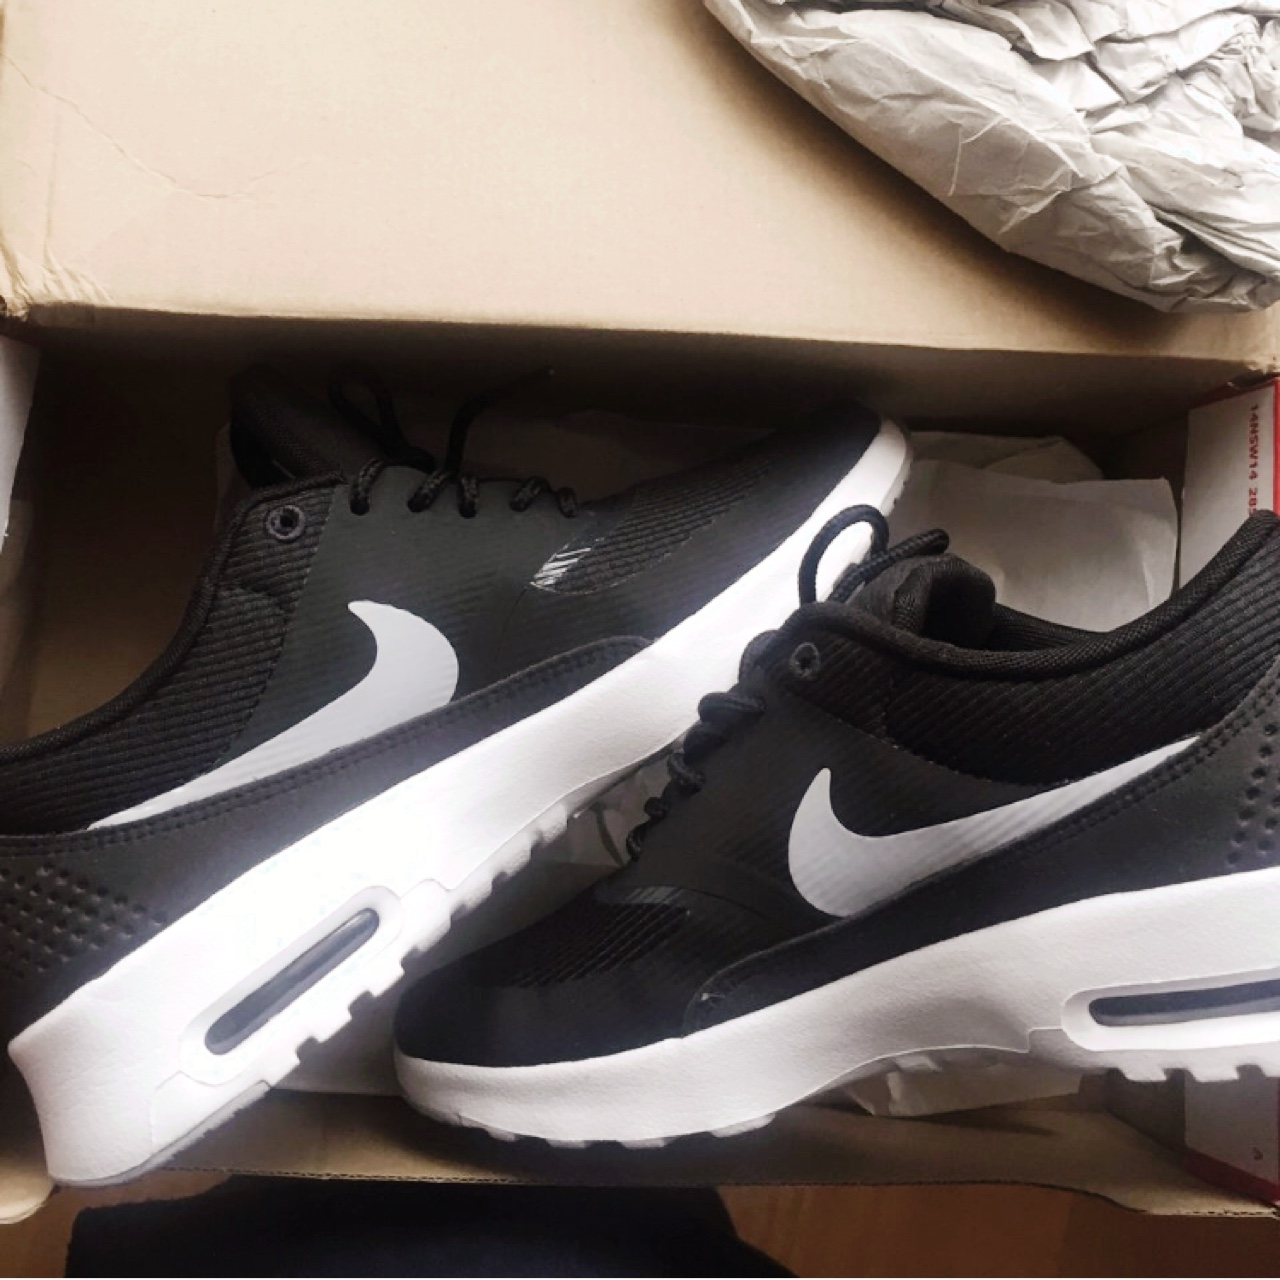 Nike Air Max Thea Women's shoes Size 4 Black, Depop